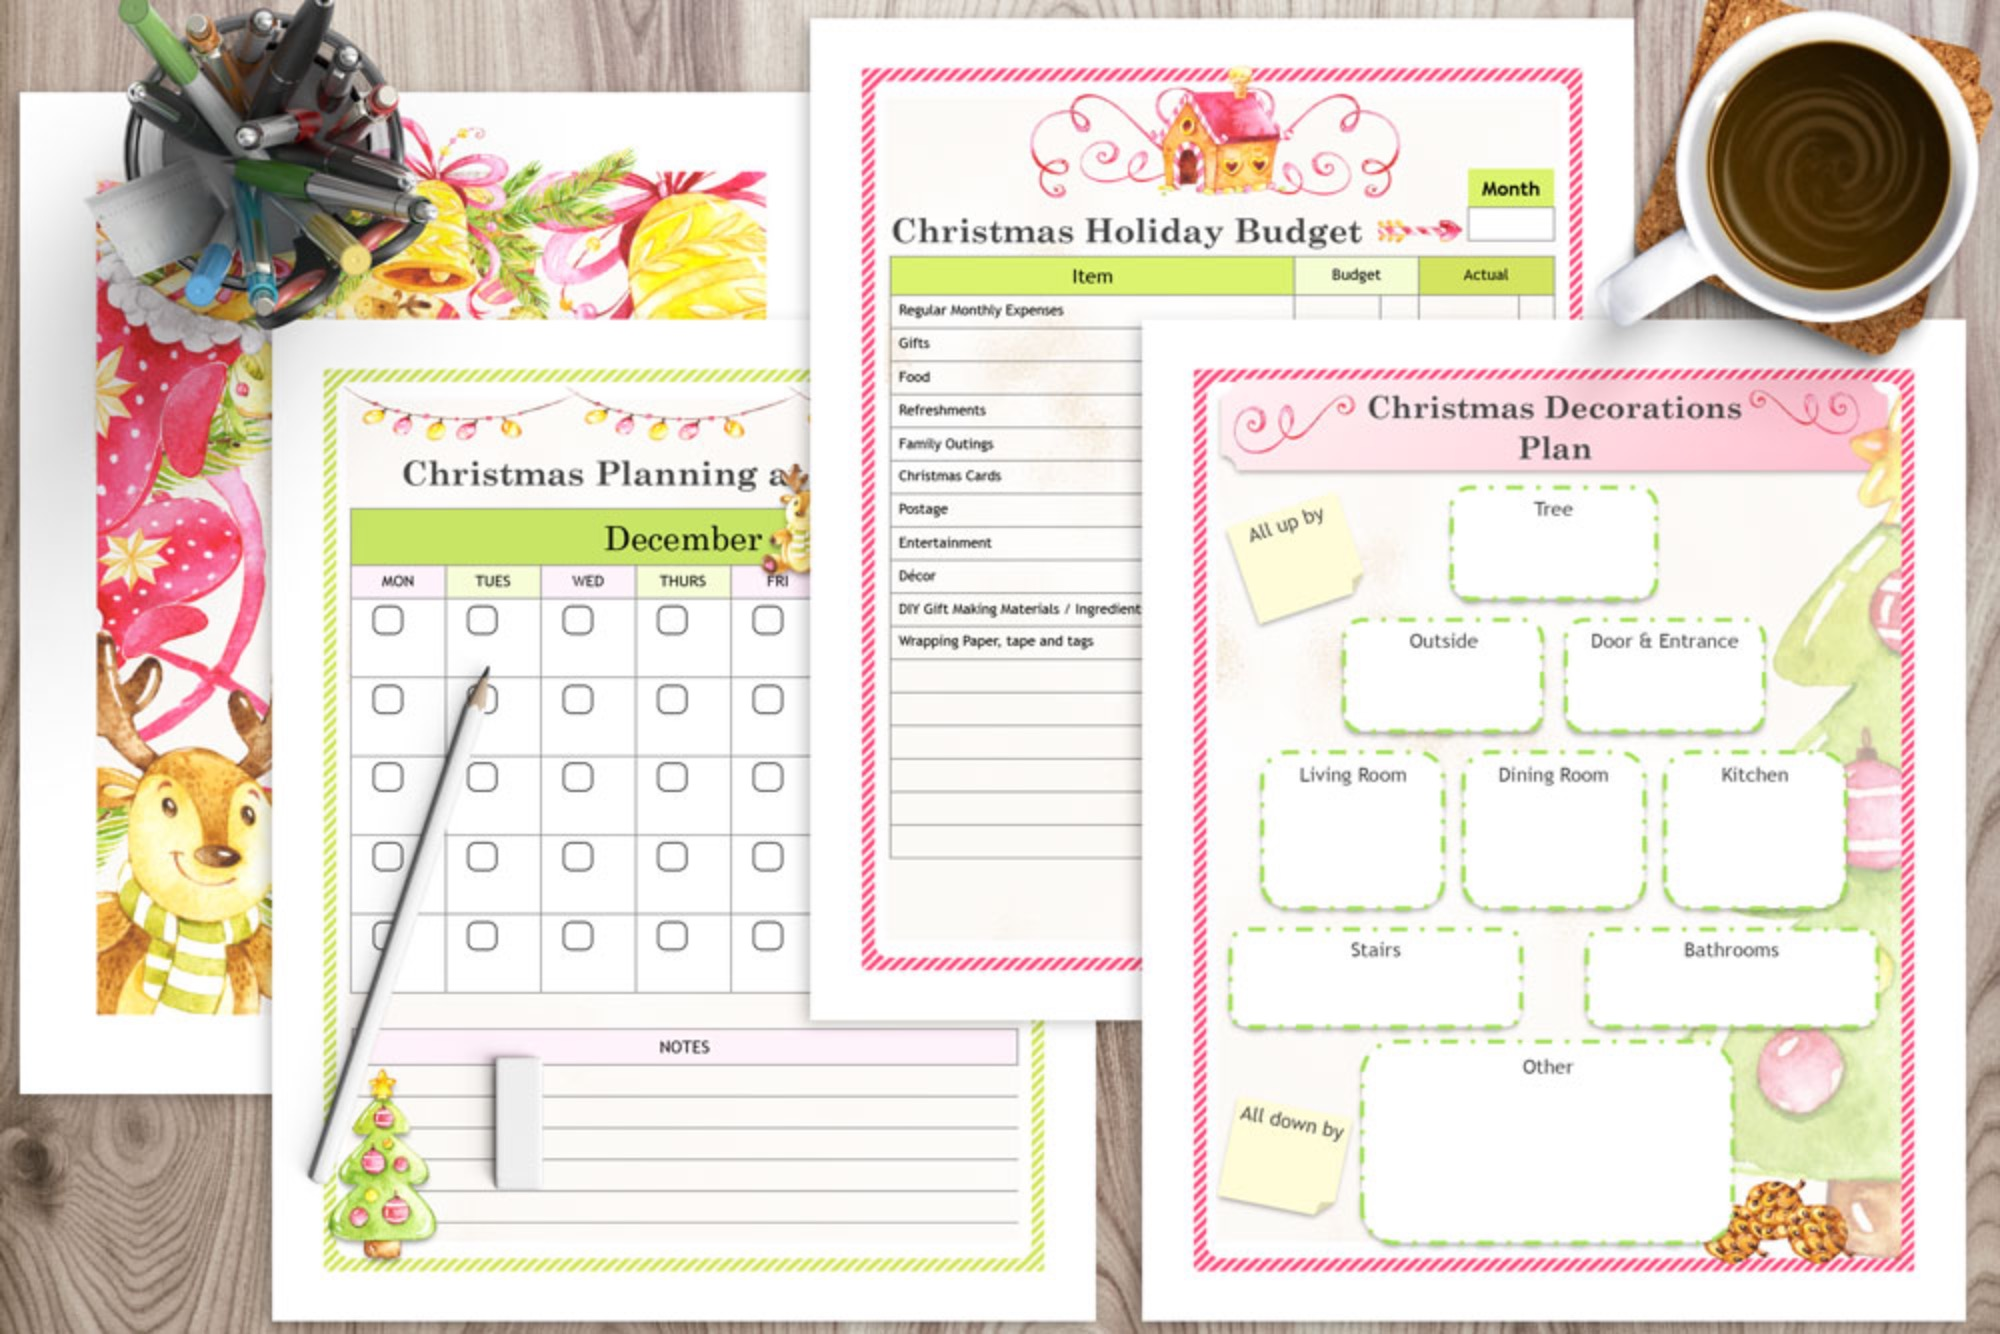 Ultimate Christmas Planner - Color & Black and White Versions